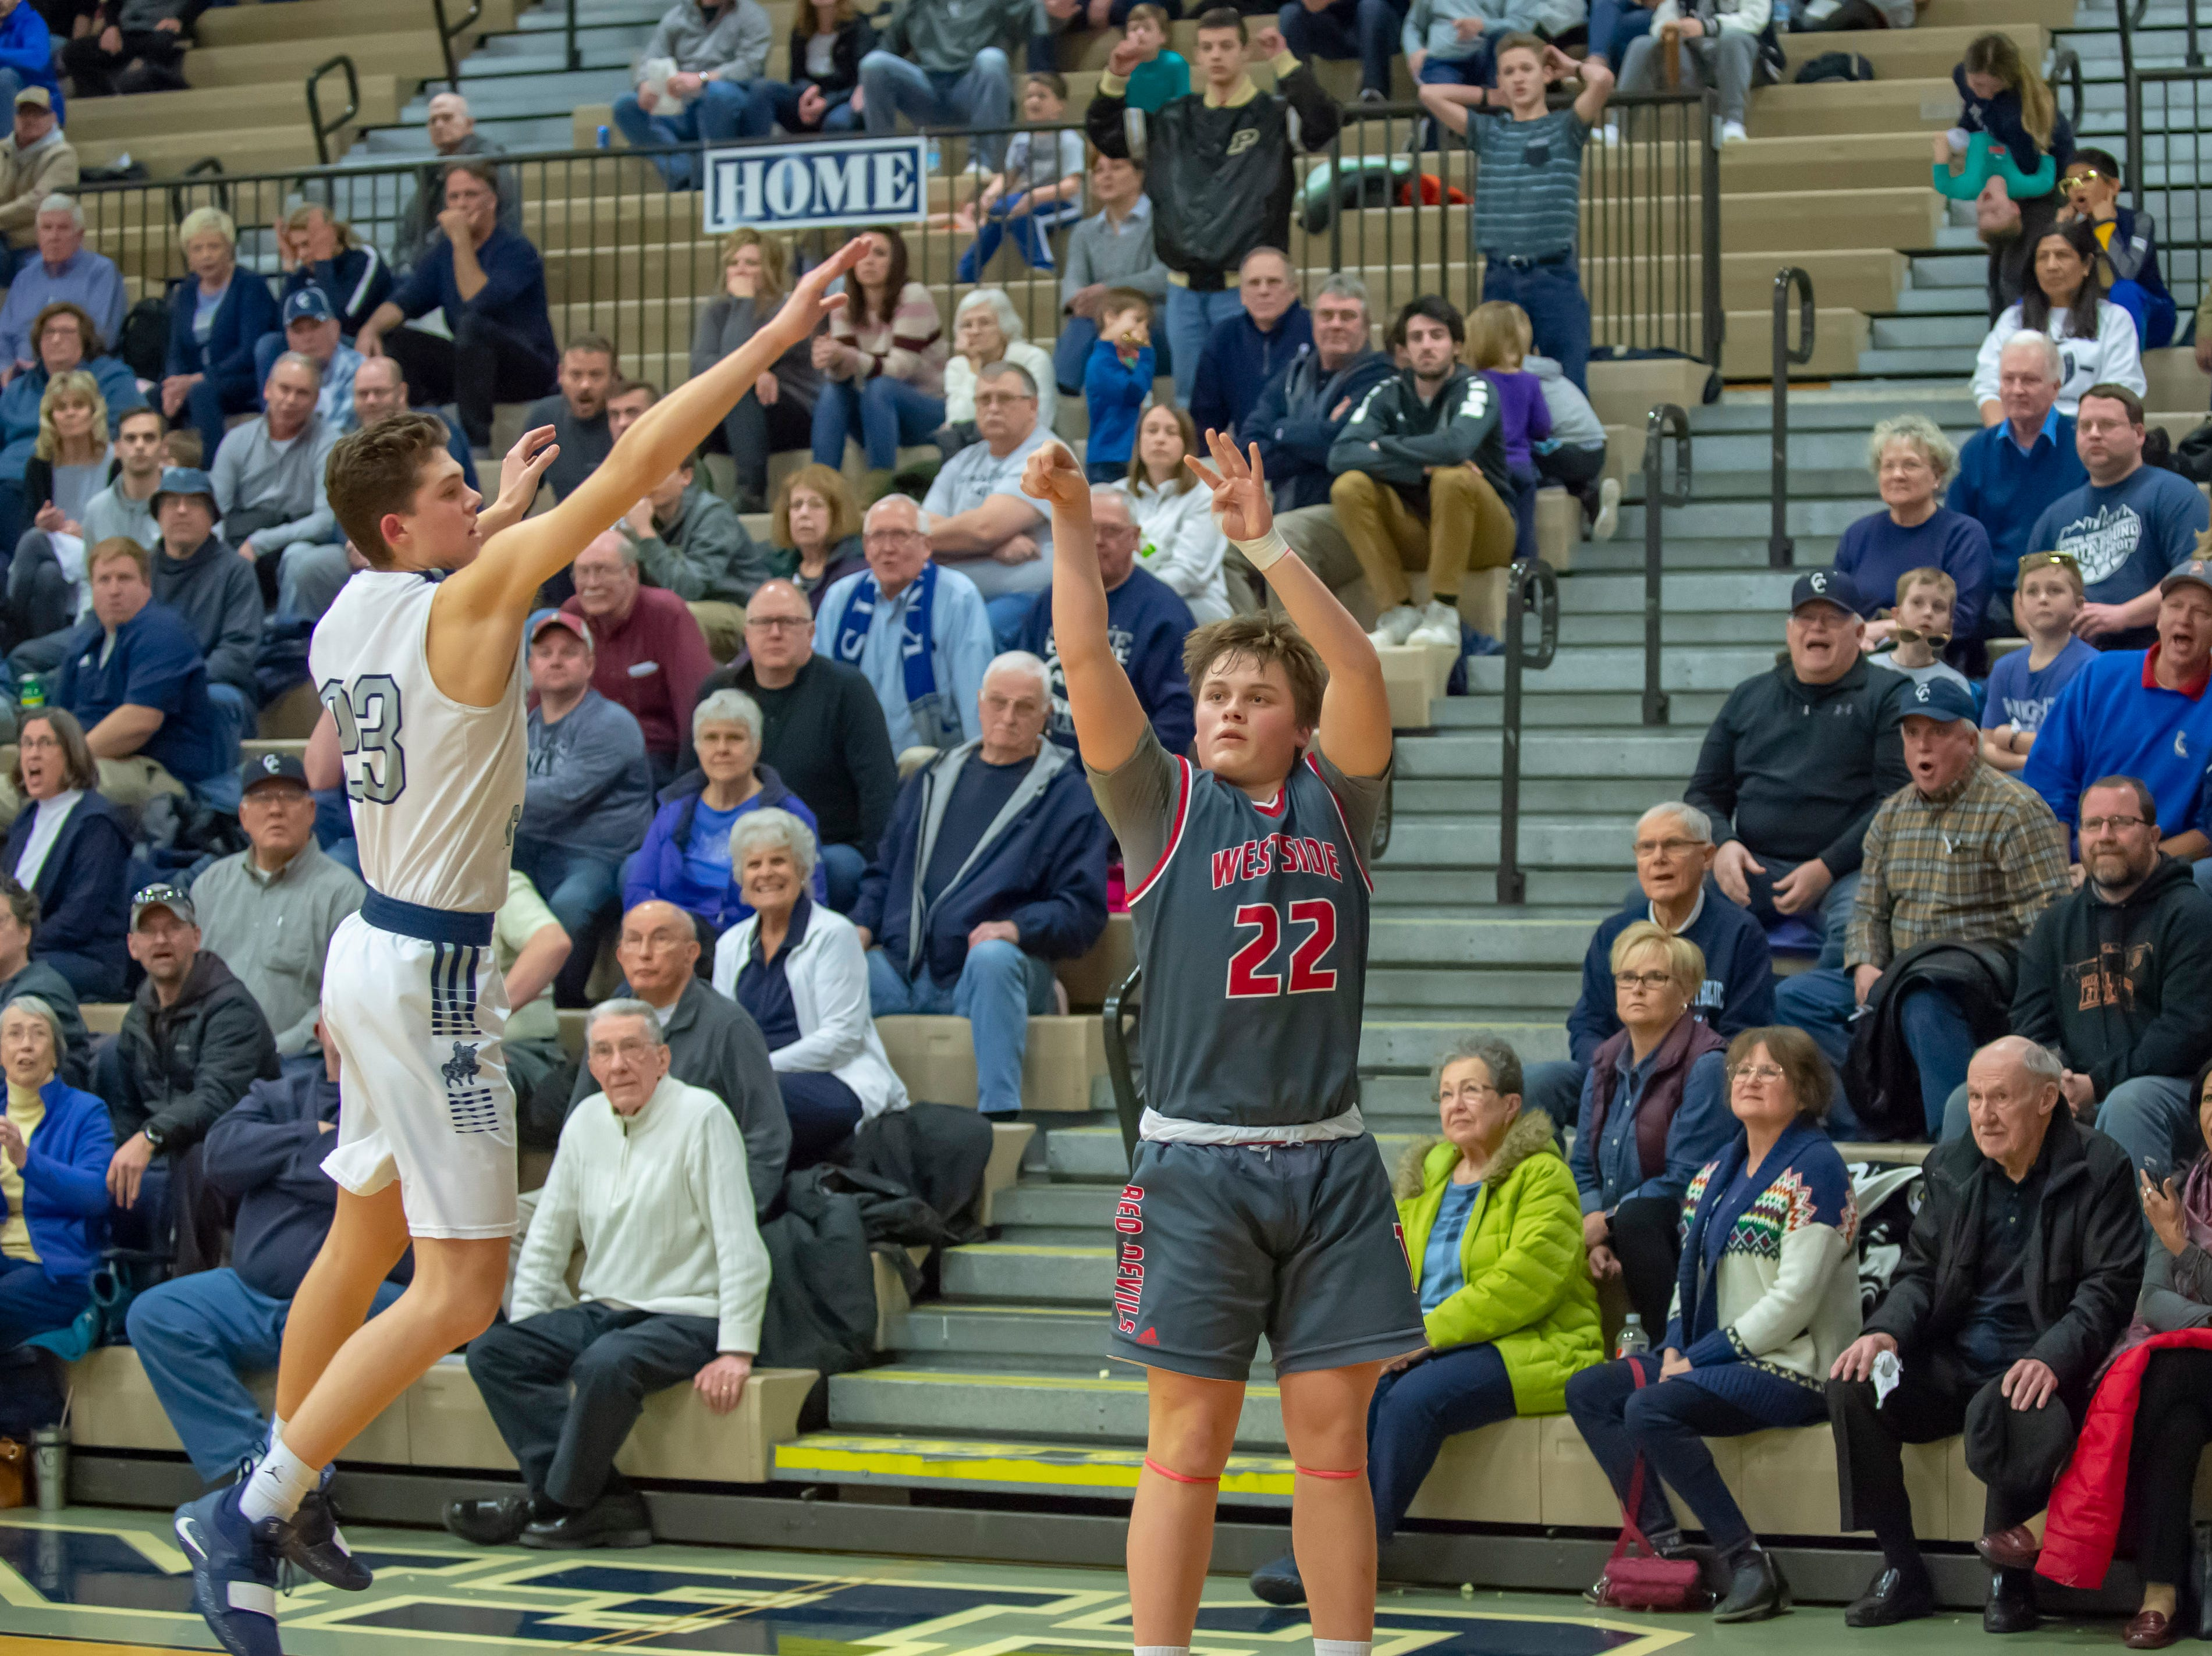 Colin Martin hits the game winning three at the buzzer in the West Lafayette at Central Catholic boys basketball rivalry game on 2/8/19